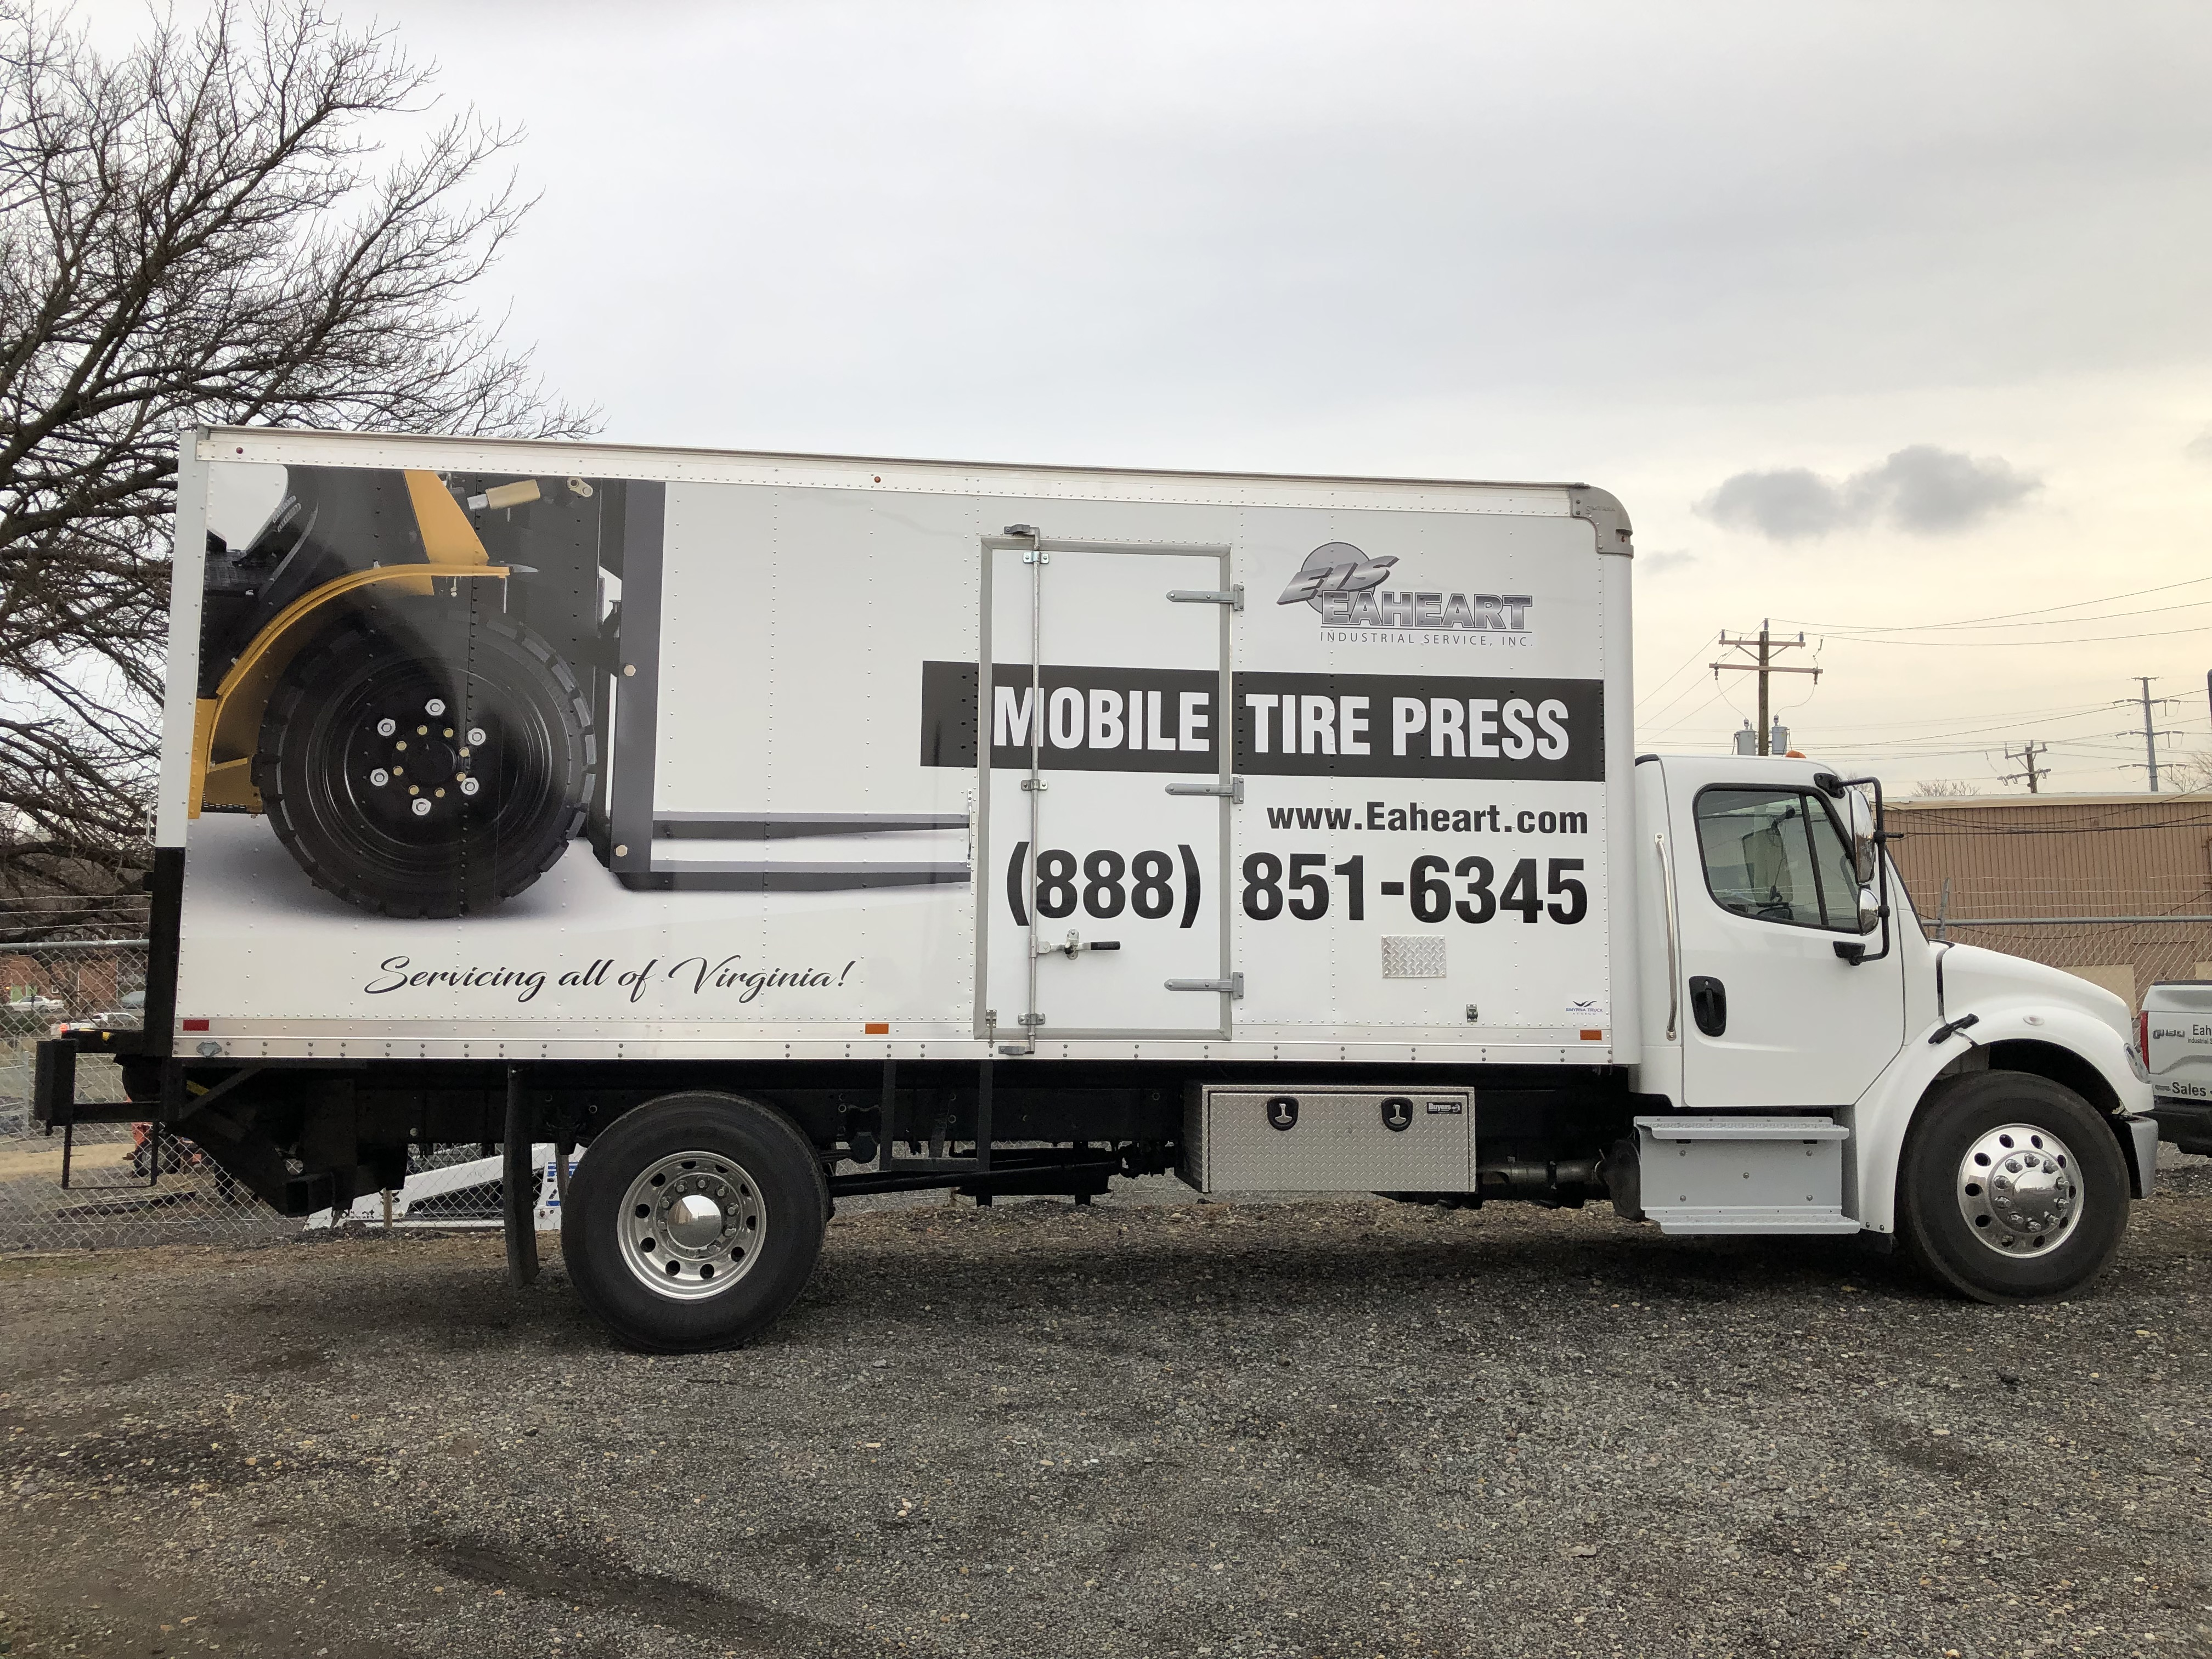 Mobile Tire Service >> Mobile Tire Press Service In Virginia Eaheart